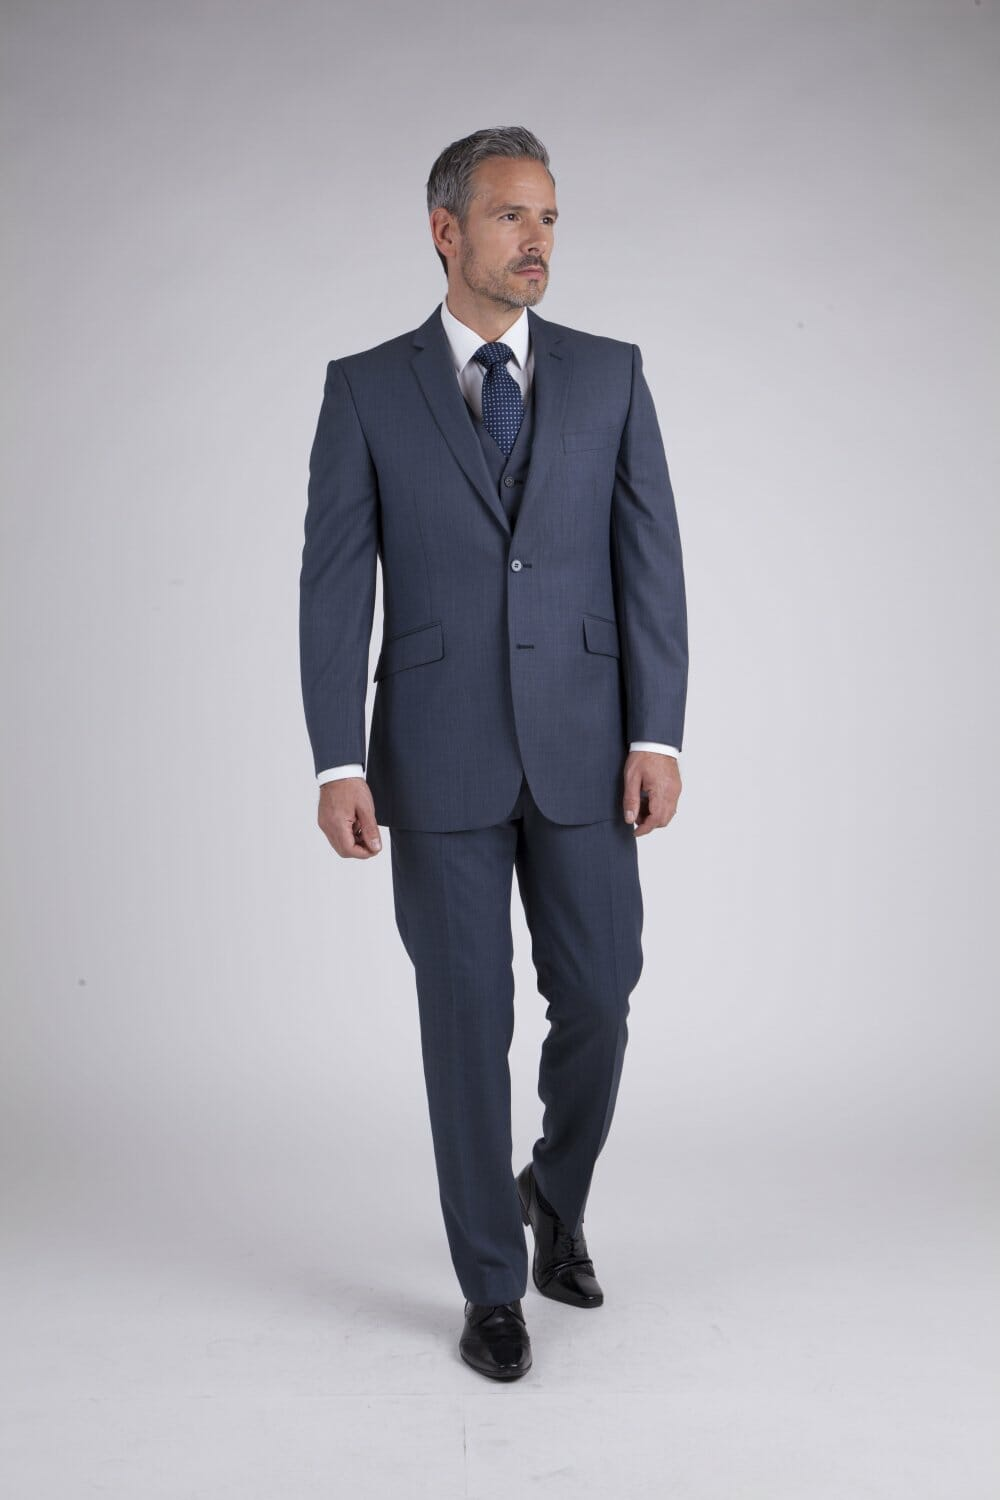 Wedding Suit Rental - Con Murphys Menswear